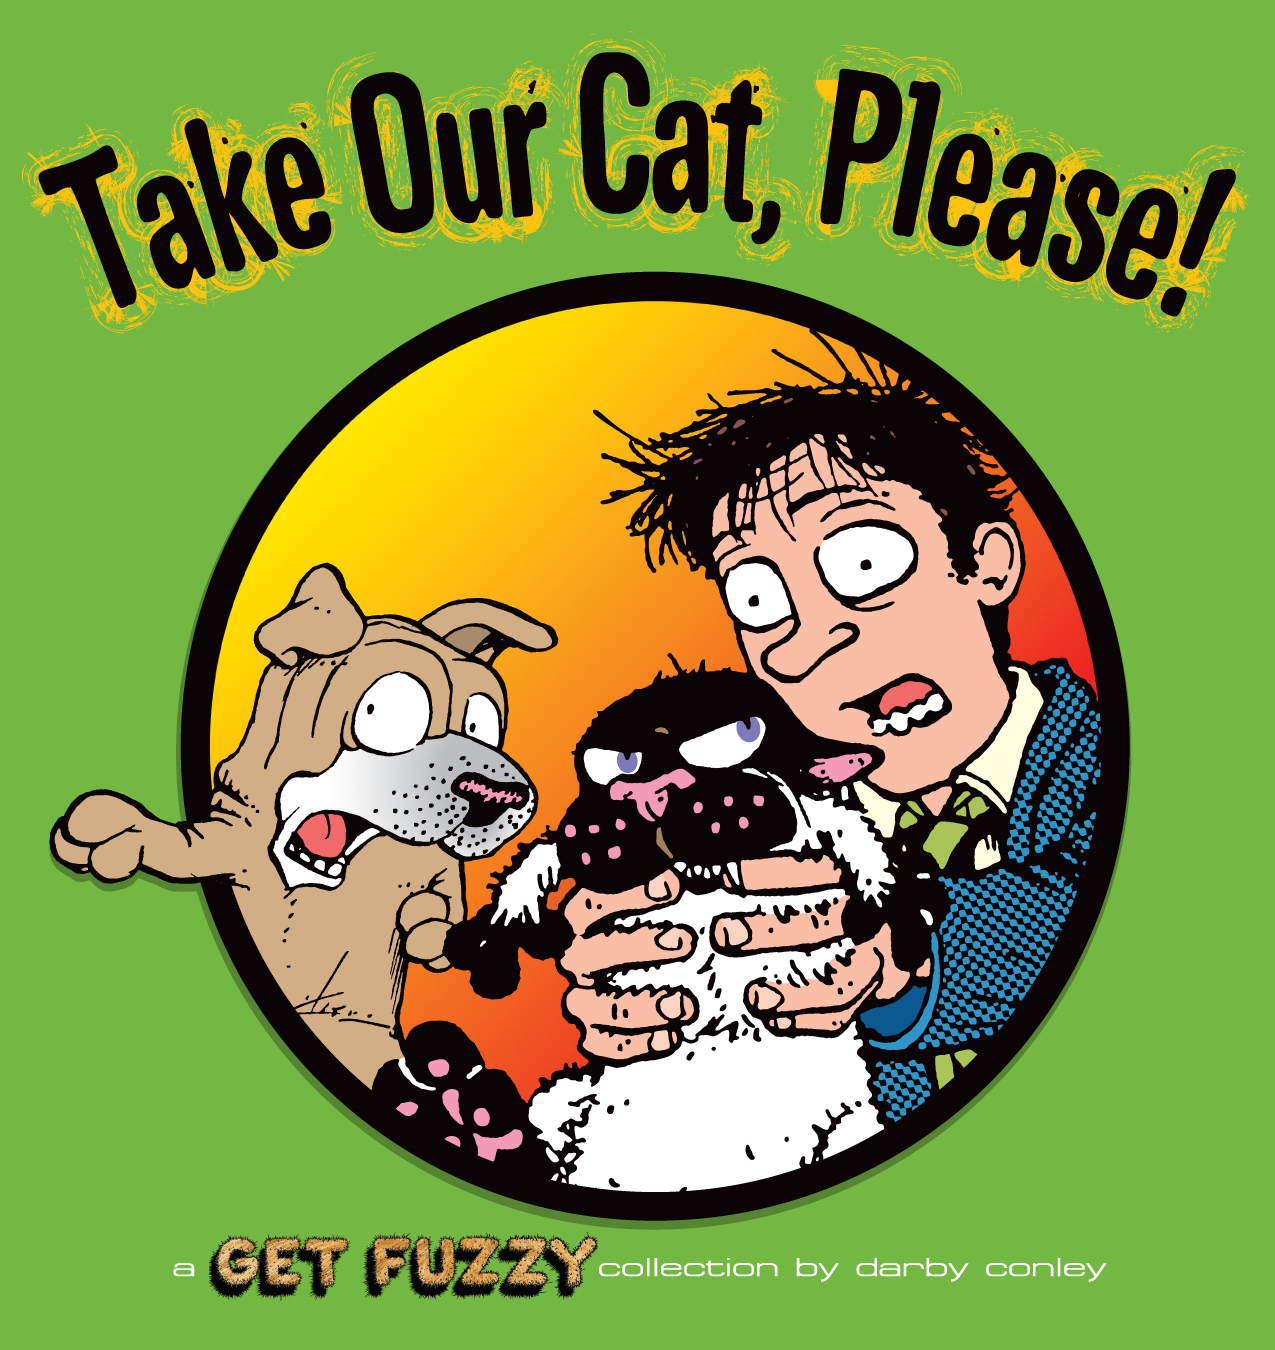 Take Our Cat, Please: A Get Fuzzy Collection By: Darby Conley